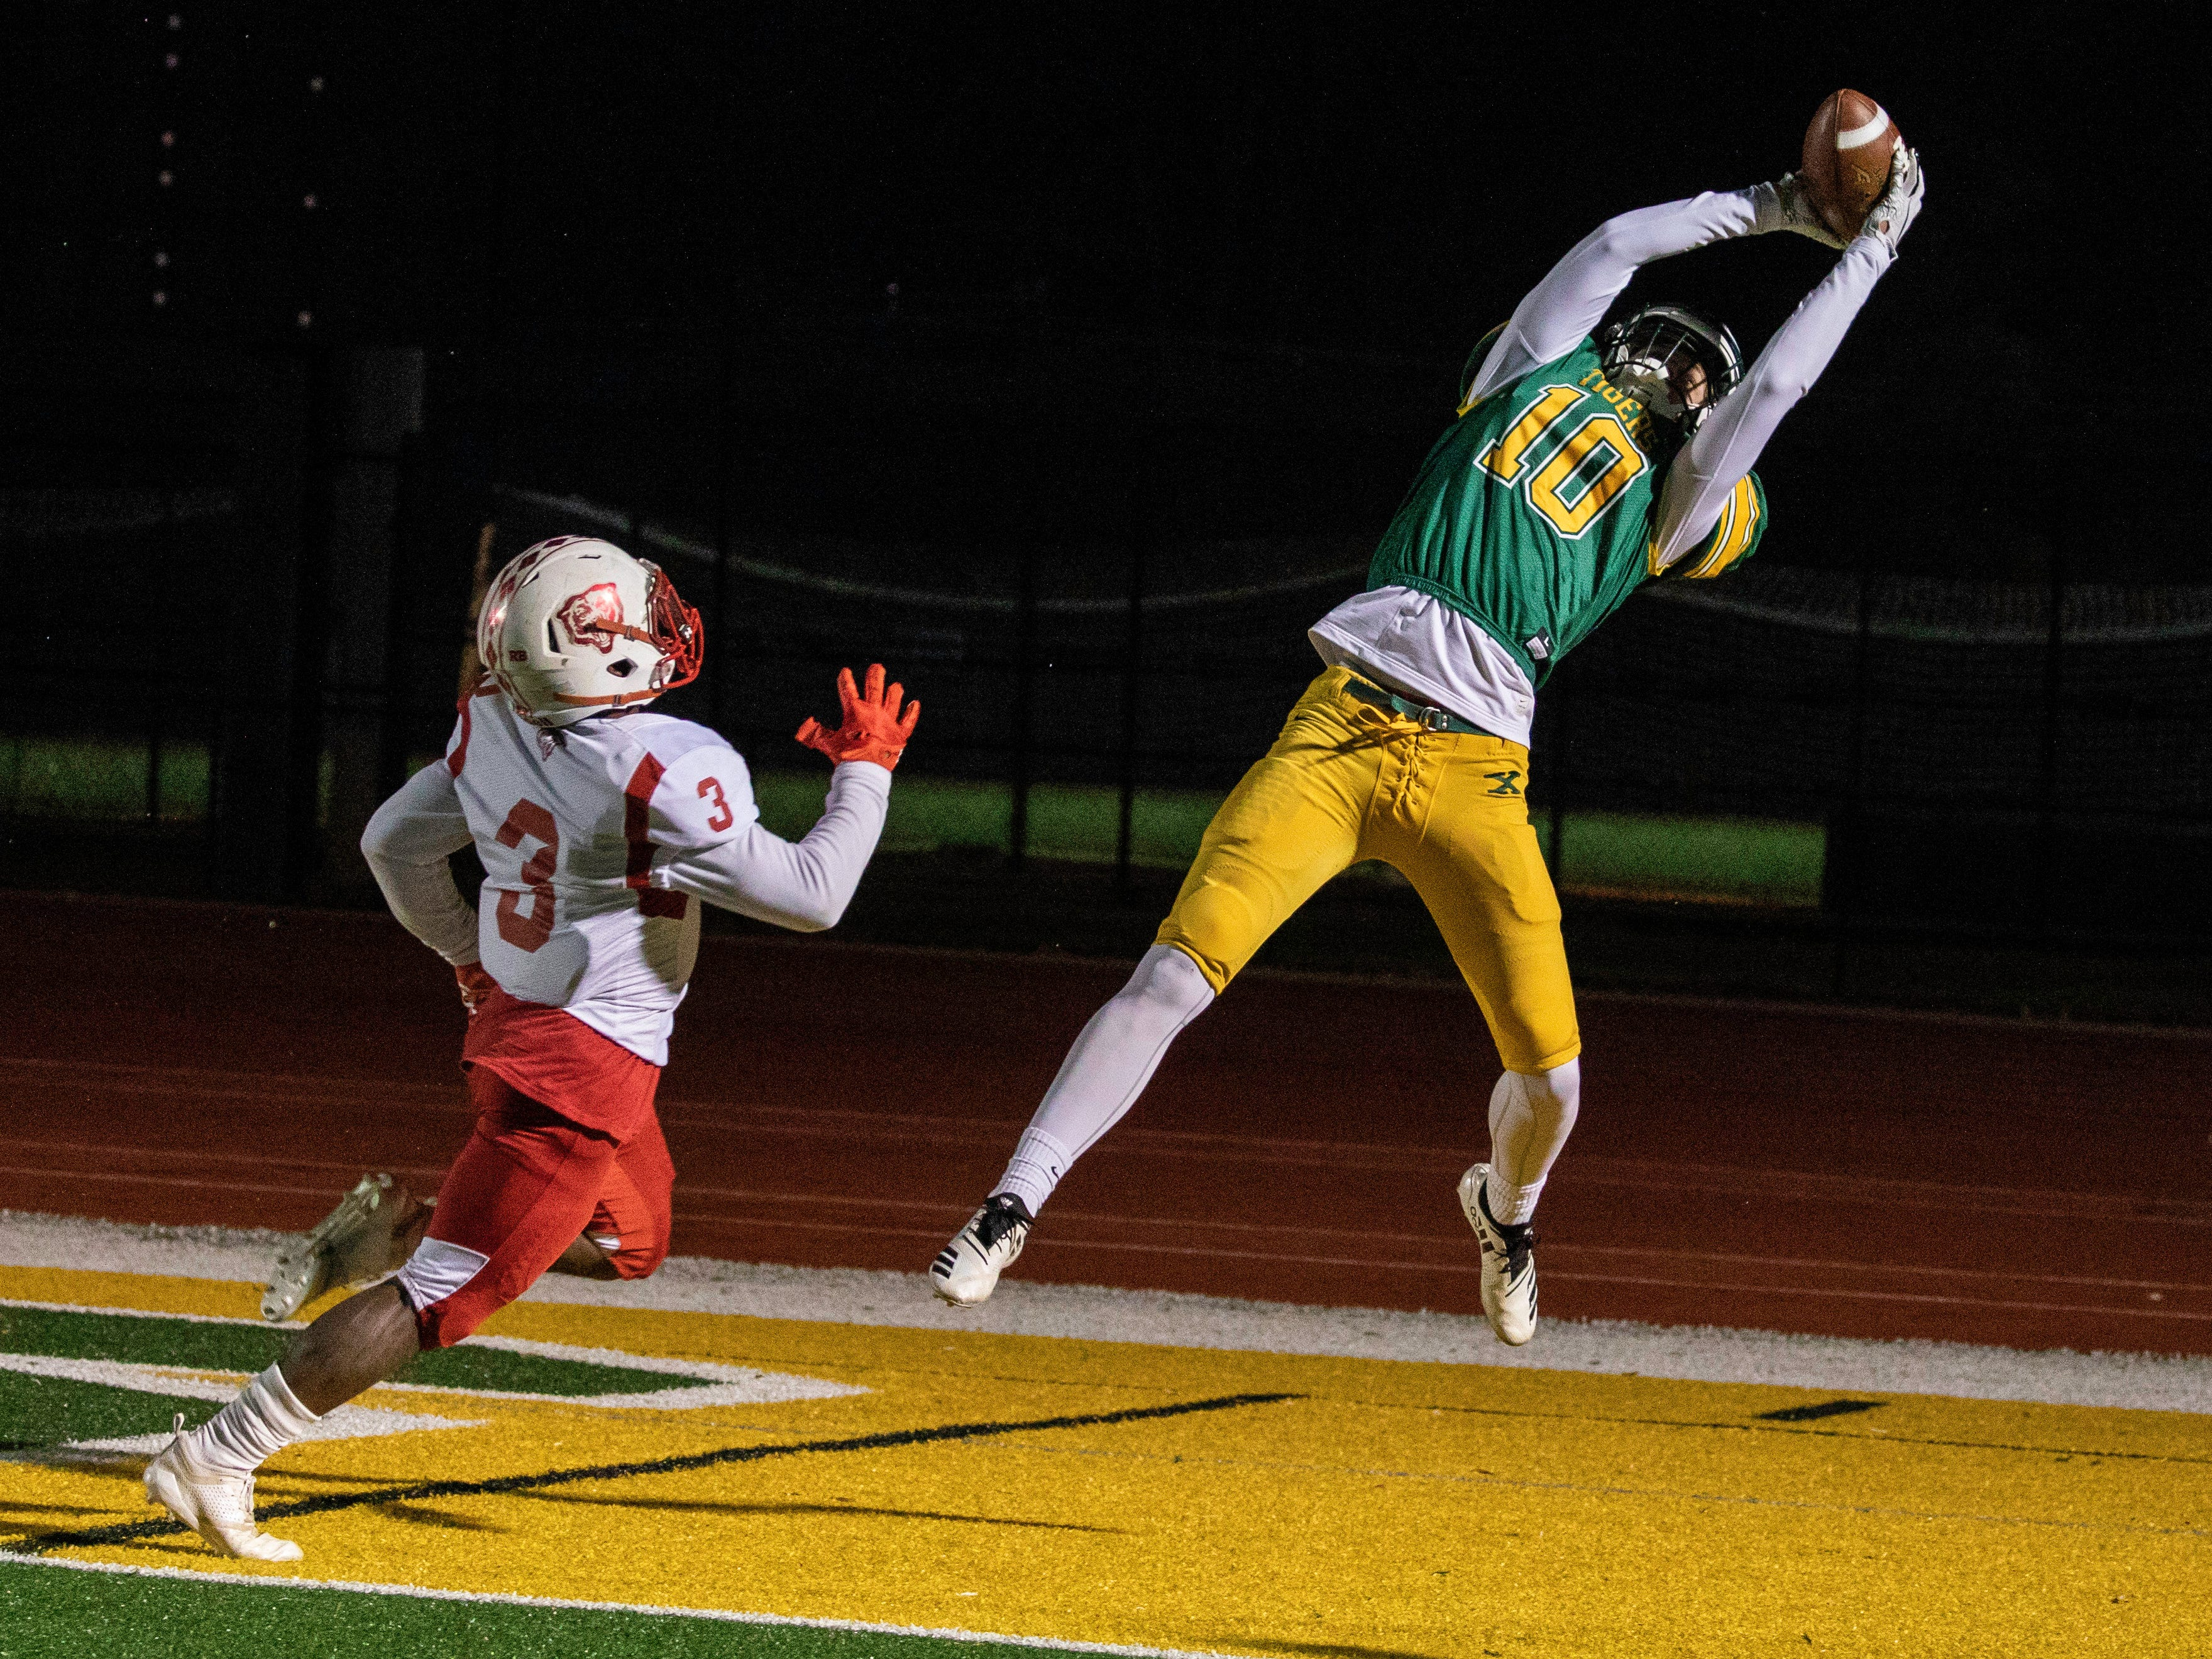 Brycen Harkins stretches out for the first touchdown of the game against Butler in the second round of the playoffs at St. Xavier High School, Friday, Nov. 9, 2018.